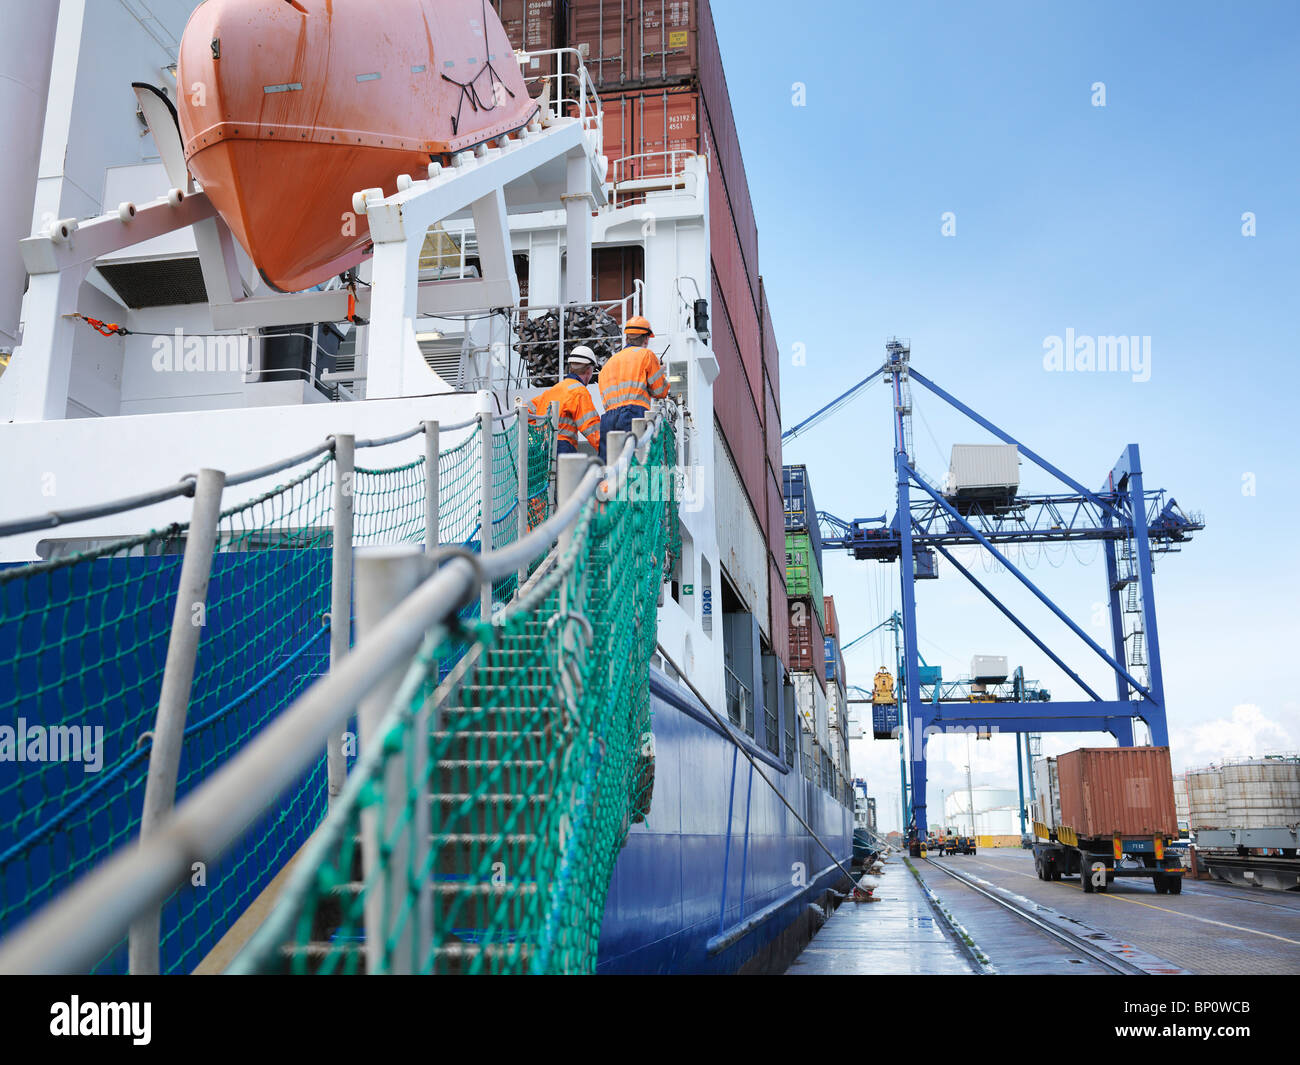 Sailors watching container ship loading - Stock Image